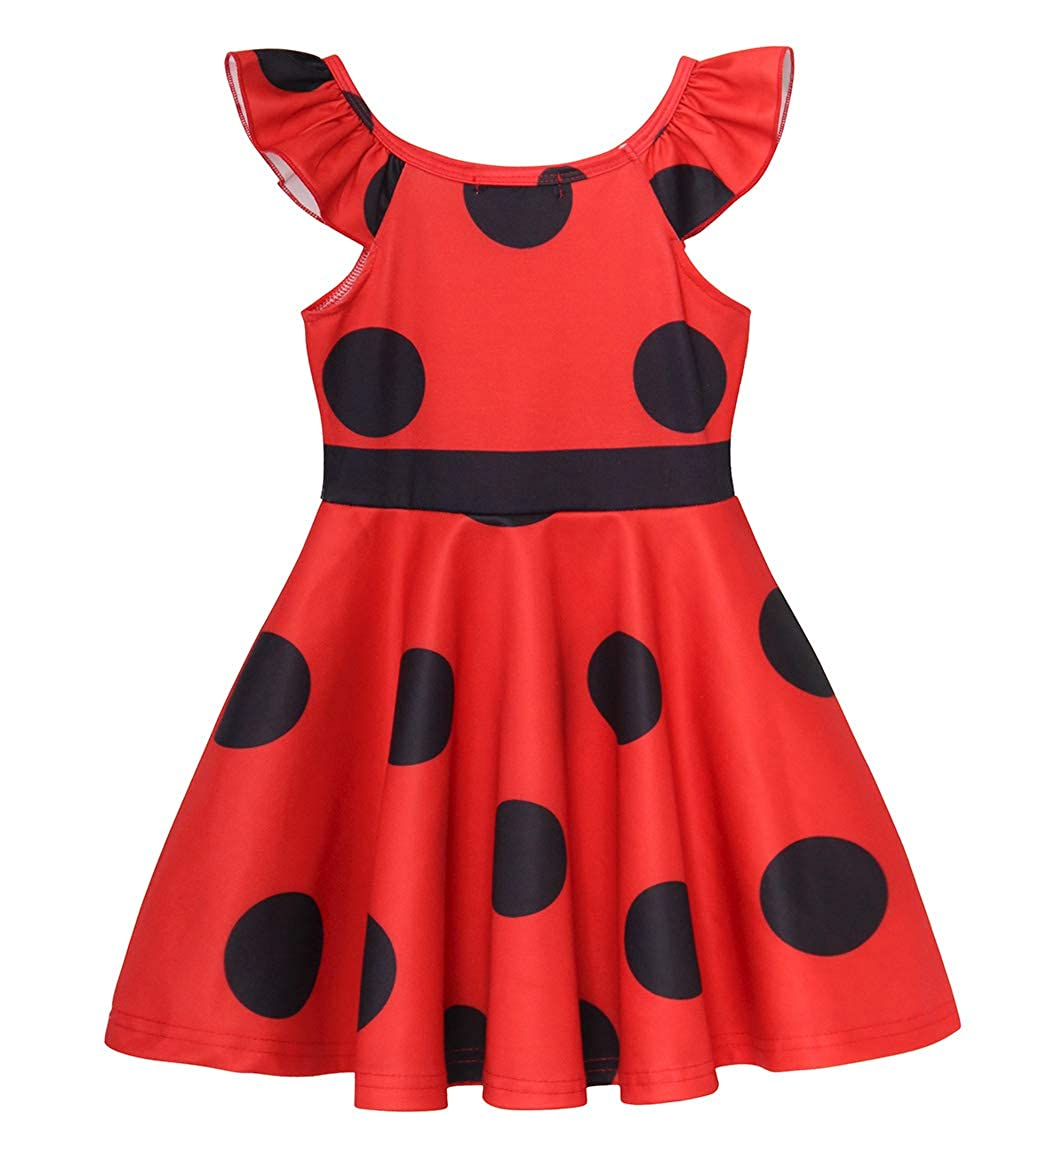 AmzBarley Ladybug Costume Girls 3 Pieces Fancy Party Dress up Outfit